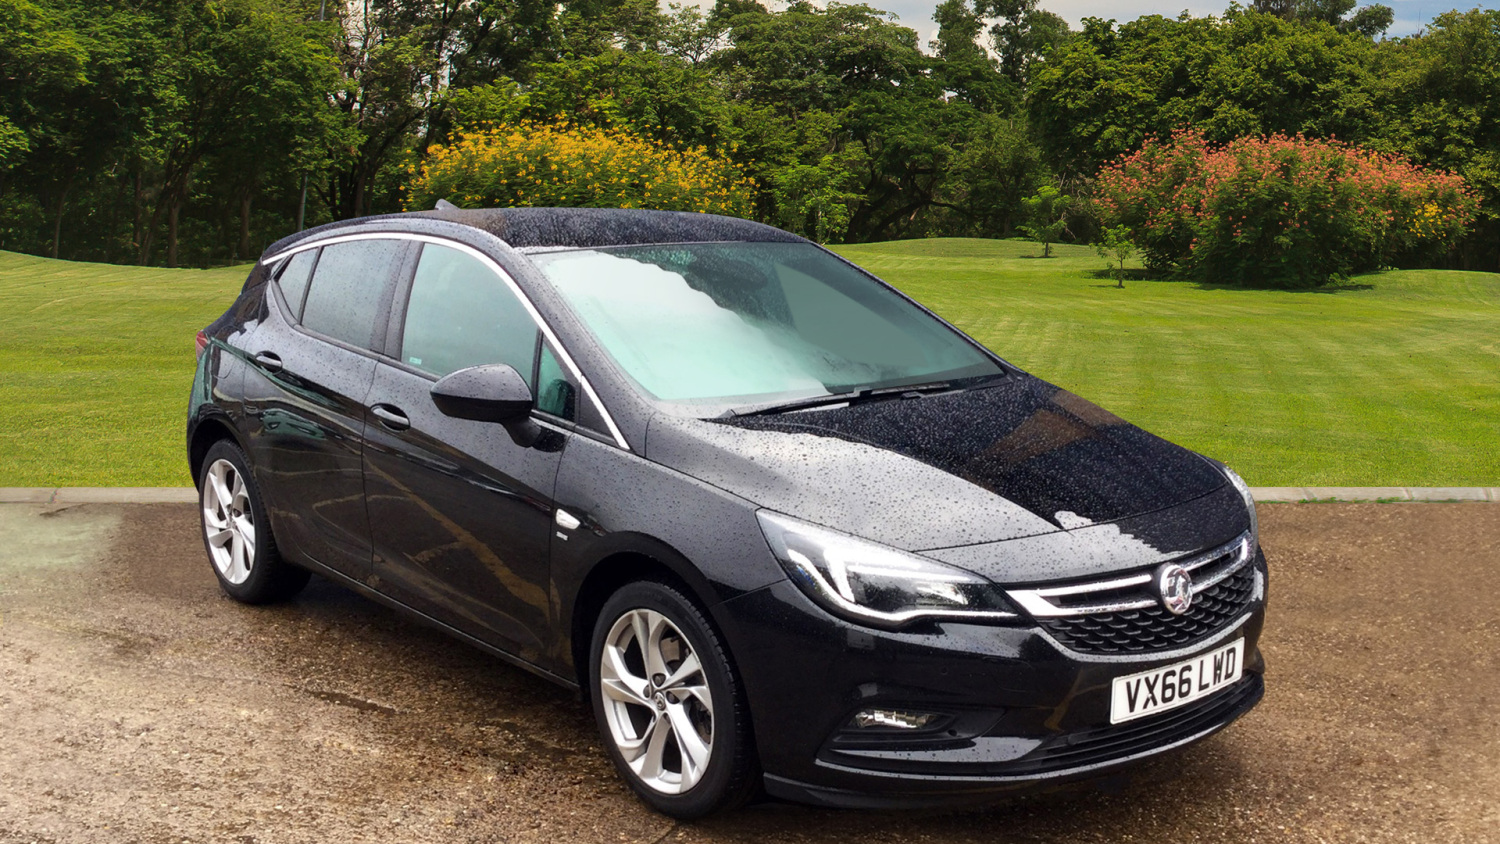 used vauxhall astra 1 6 cdti 16v 136 sri nav 5dr diesel hatchback for sale bristol street motors. Black Bedroom Furniture Sets. Home Design Ideas